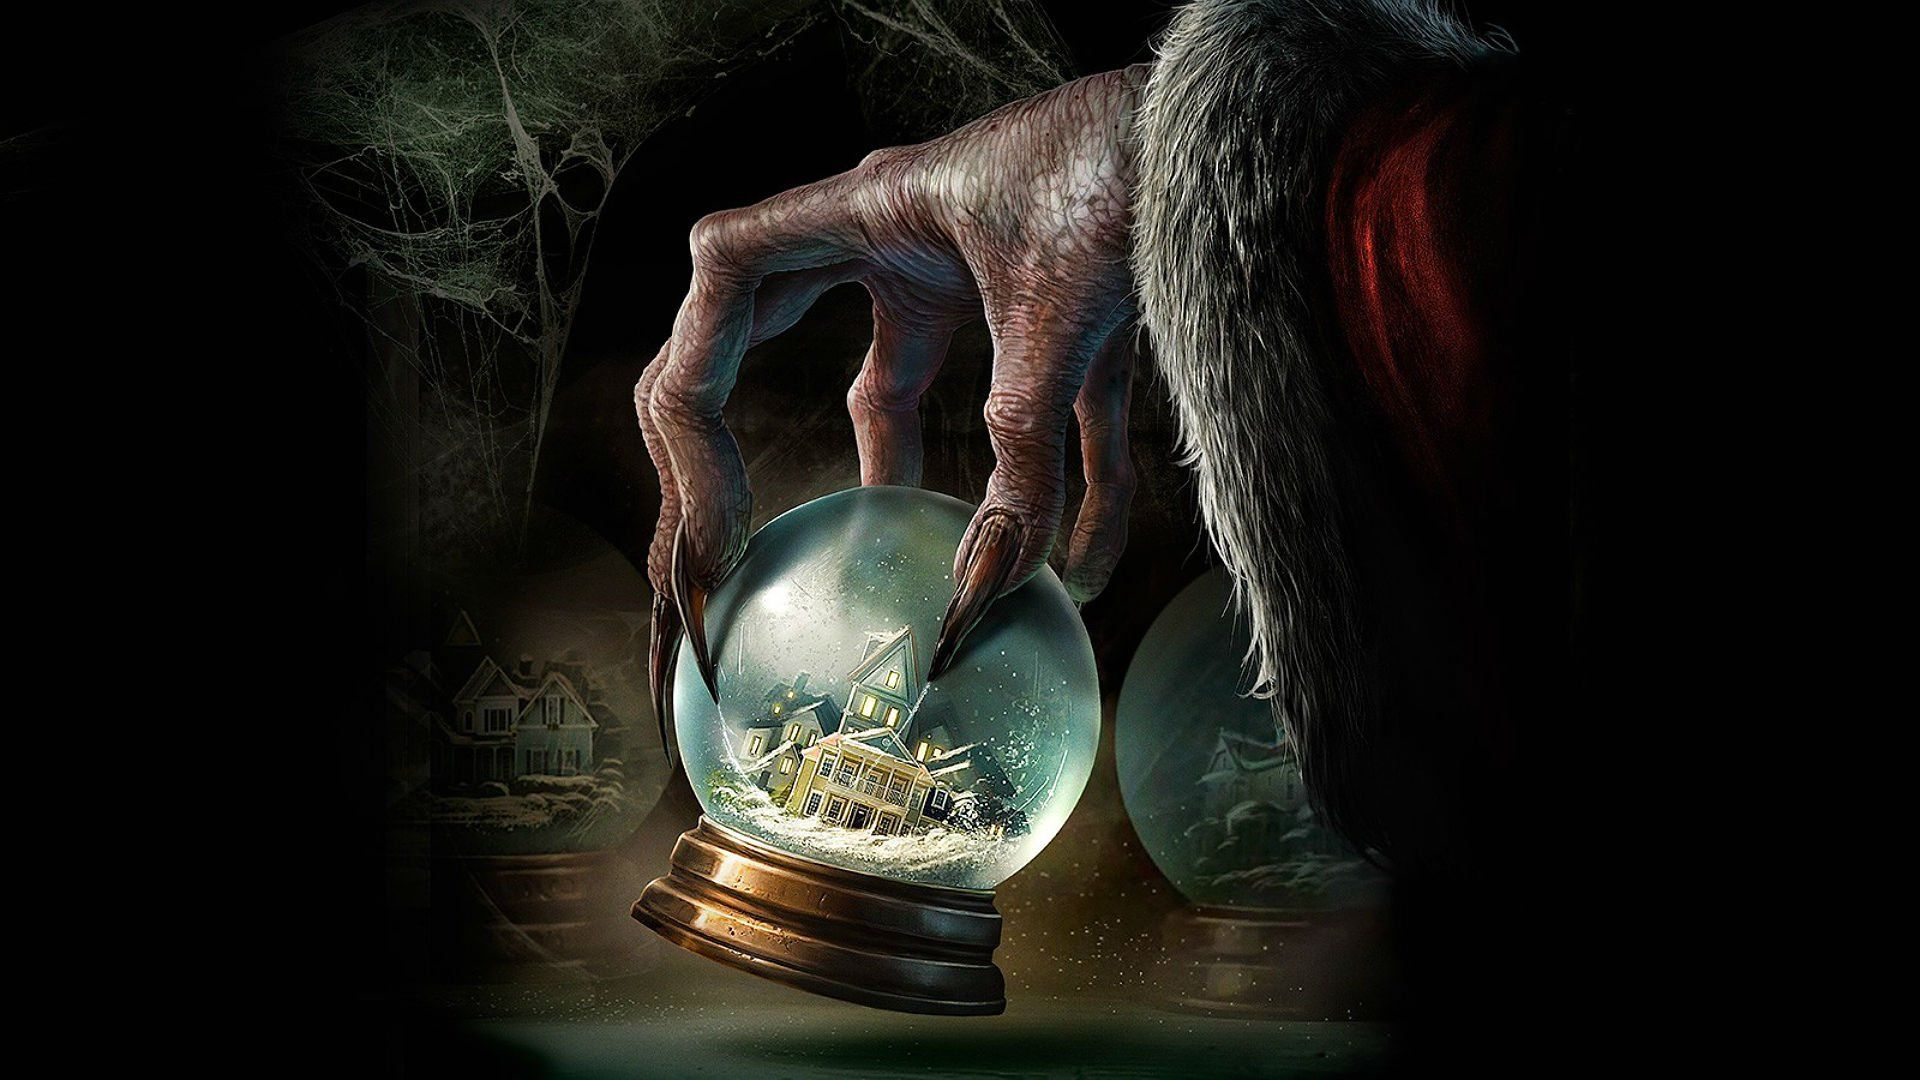 1920x1080 Download Scary Christmas Wallpaper, HD Backgrounds Download - itl.cat